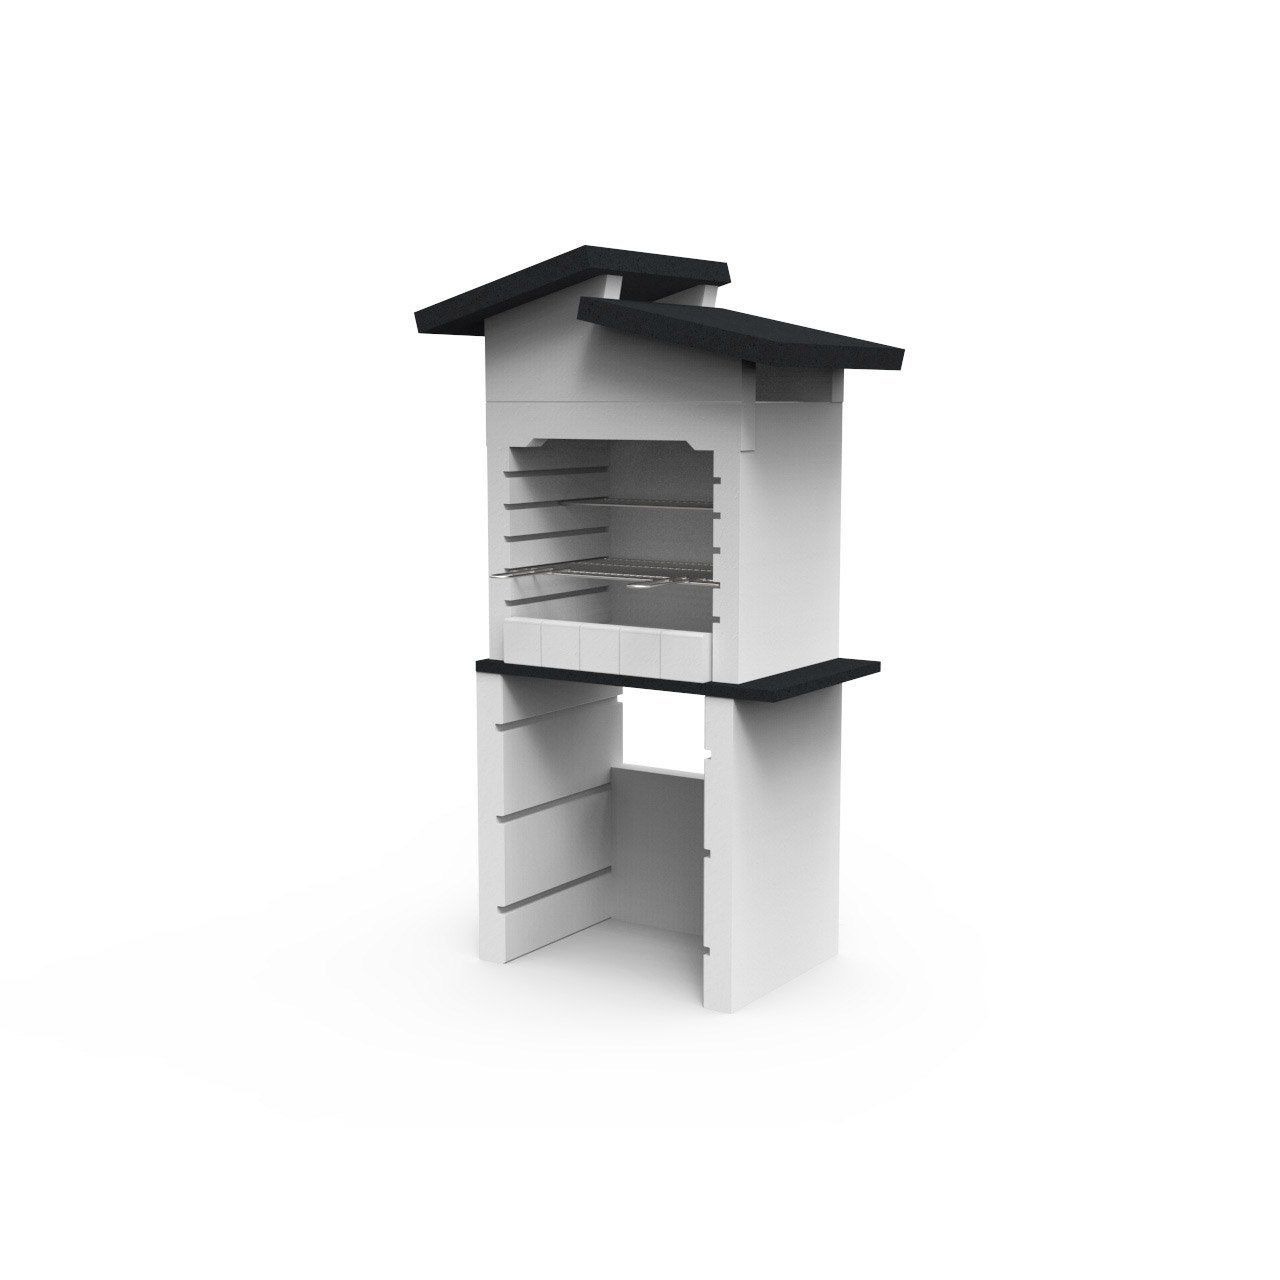 Barbecue En Beton Blanc Bbq Isabelle L 96 X L 60 X H 167 Cm Leroy Merlin Barbecue En Beton Beton Blanc Idees Barbecue